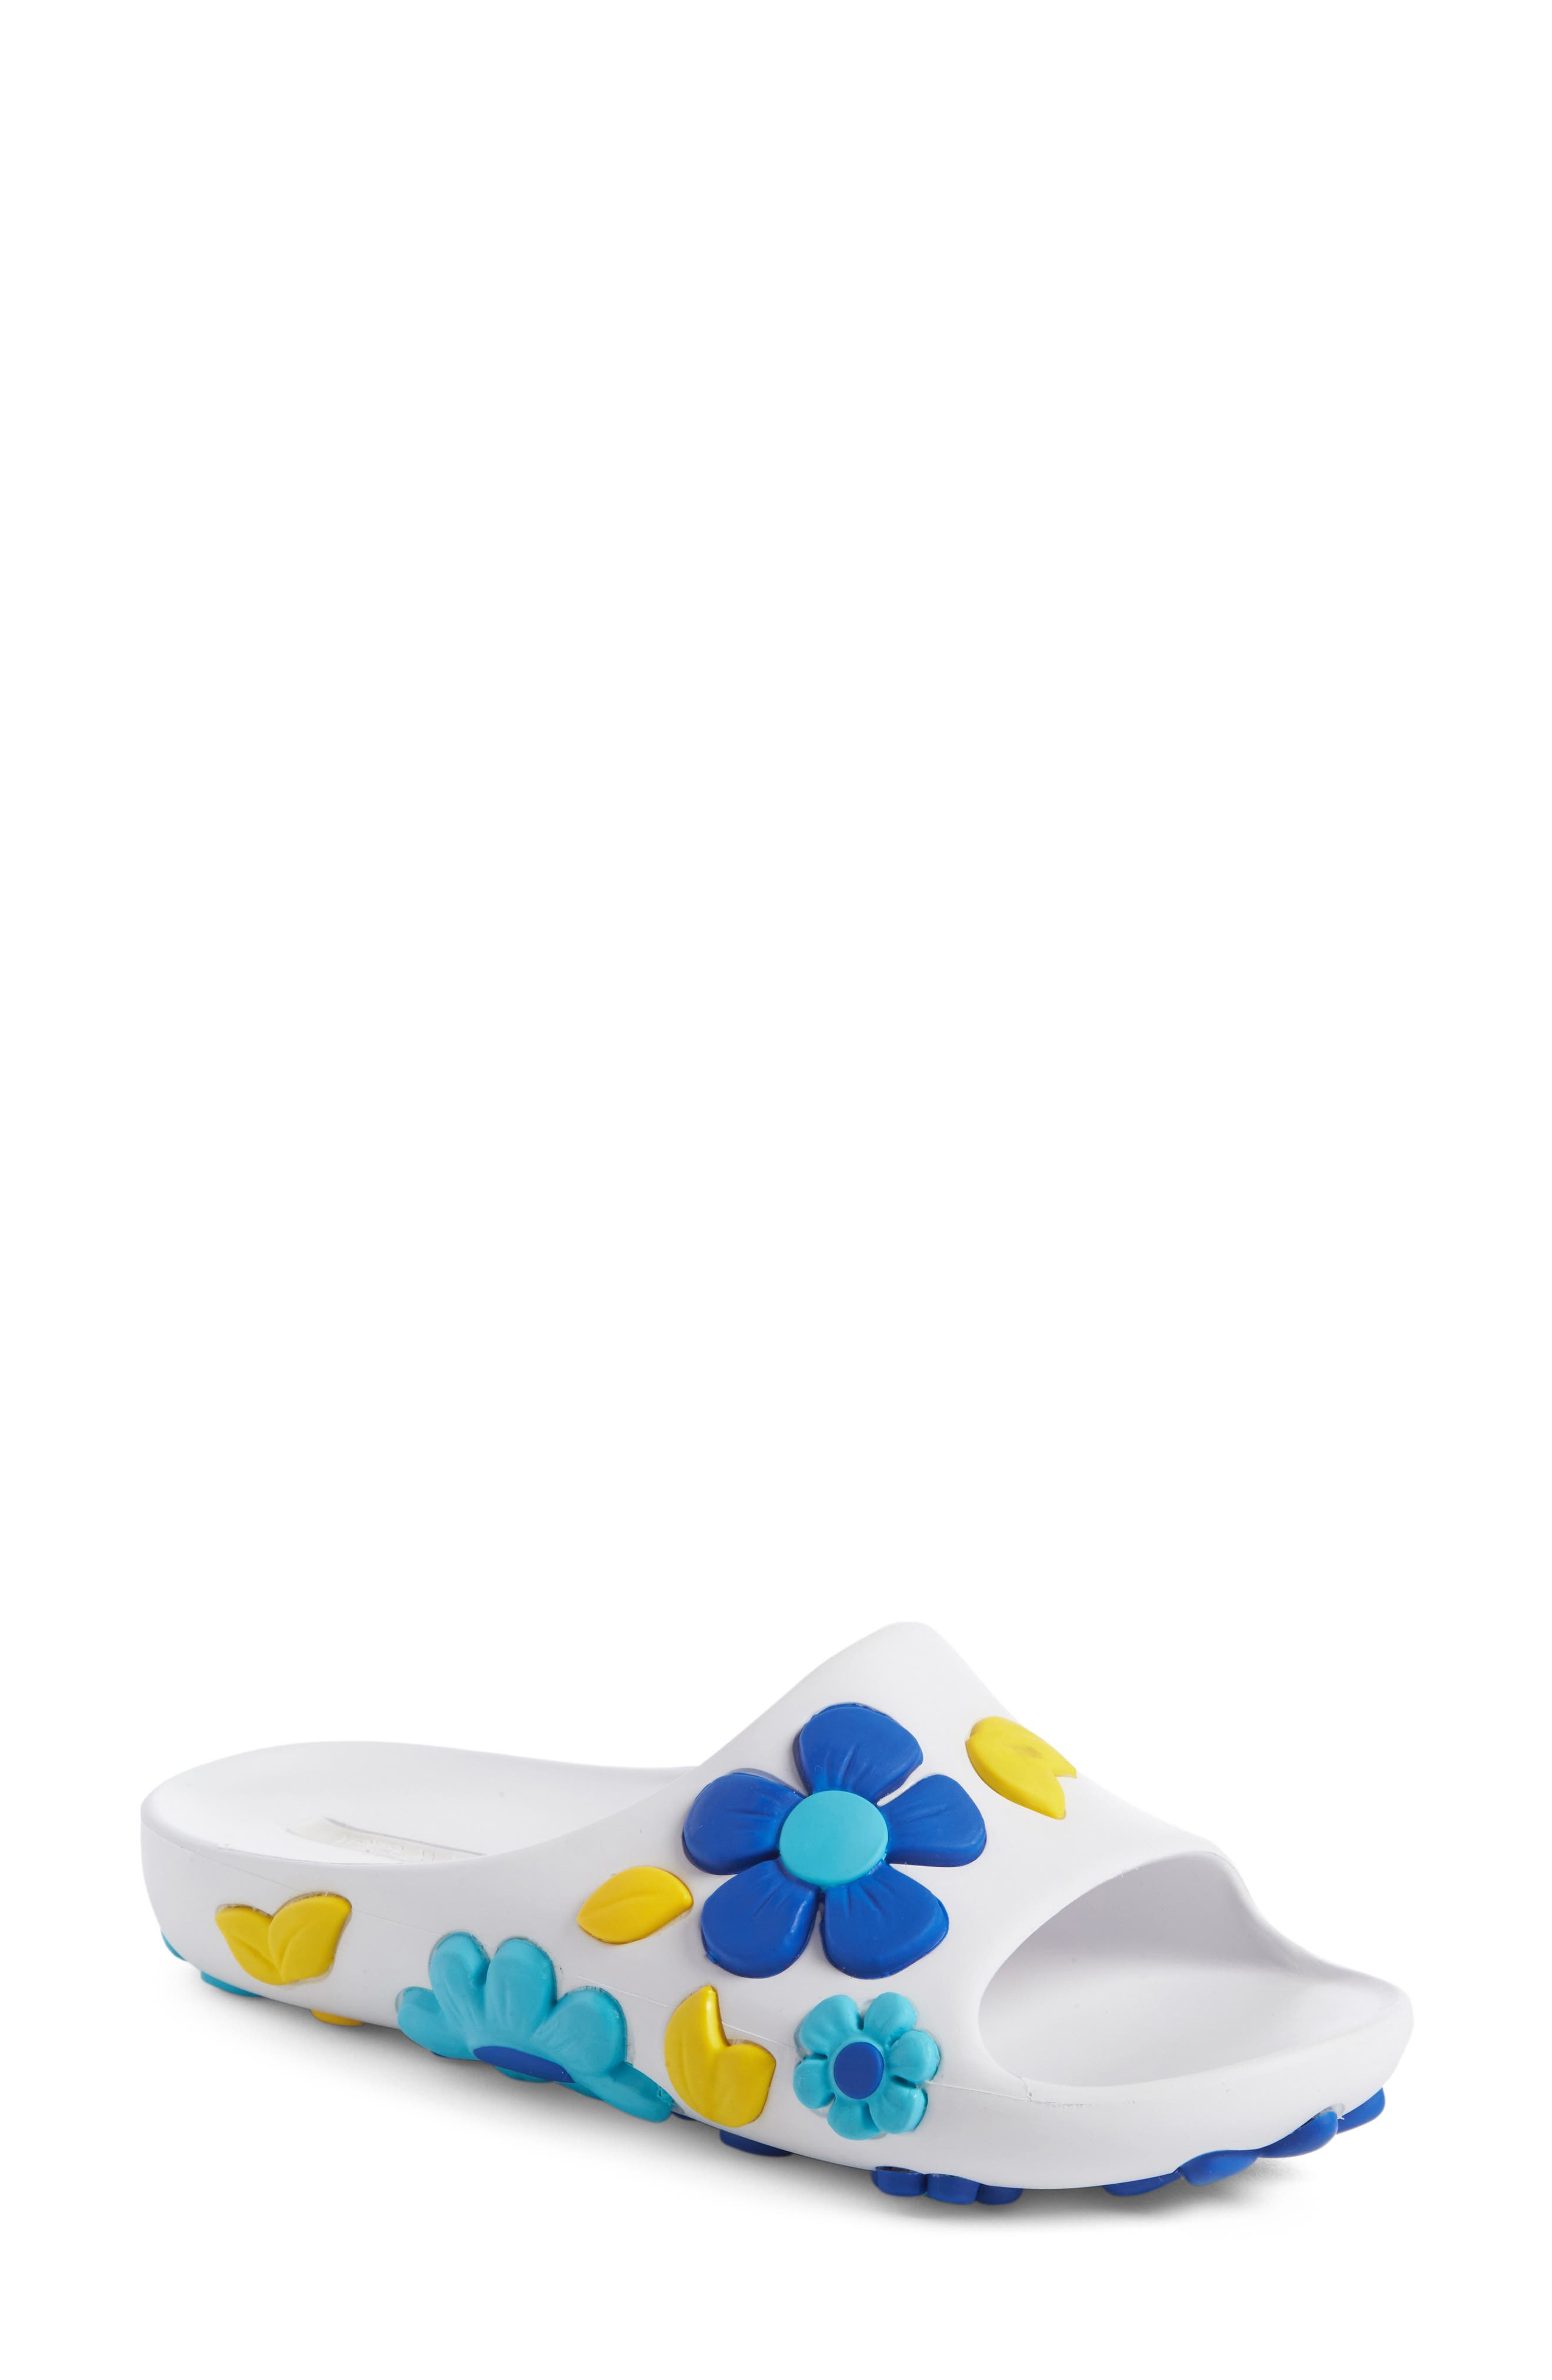 cheap factory outlet Prada Floral Slide Sandals genuine clearance buy H5NYYvdCL